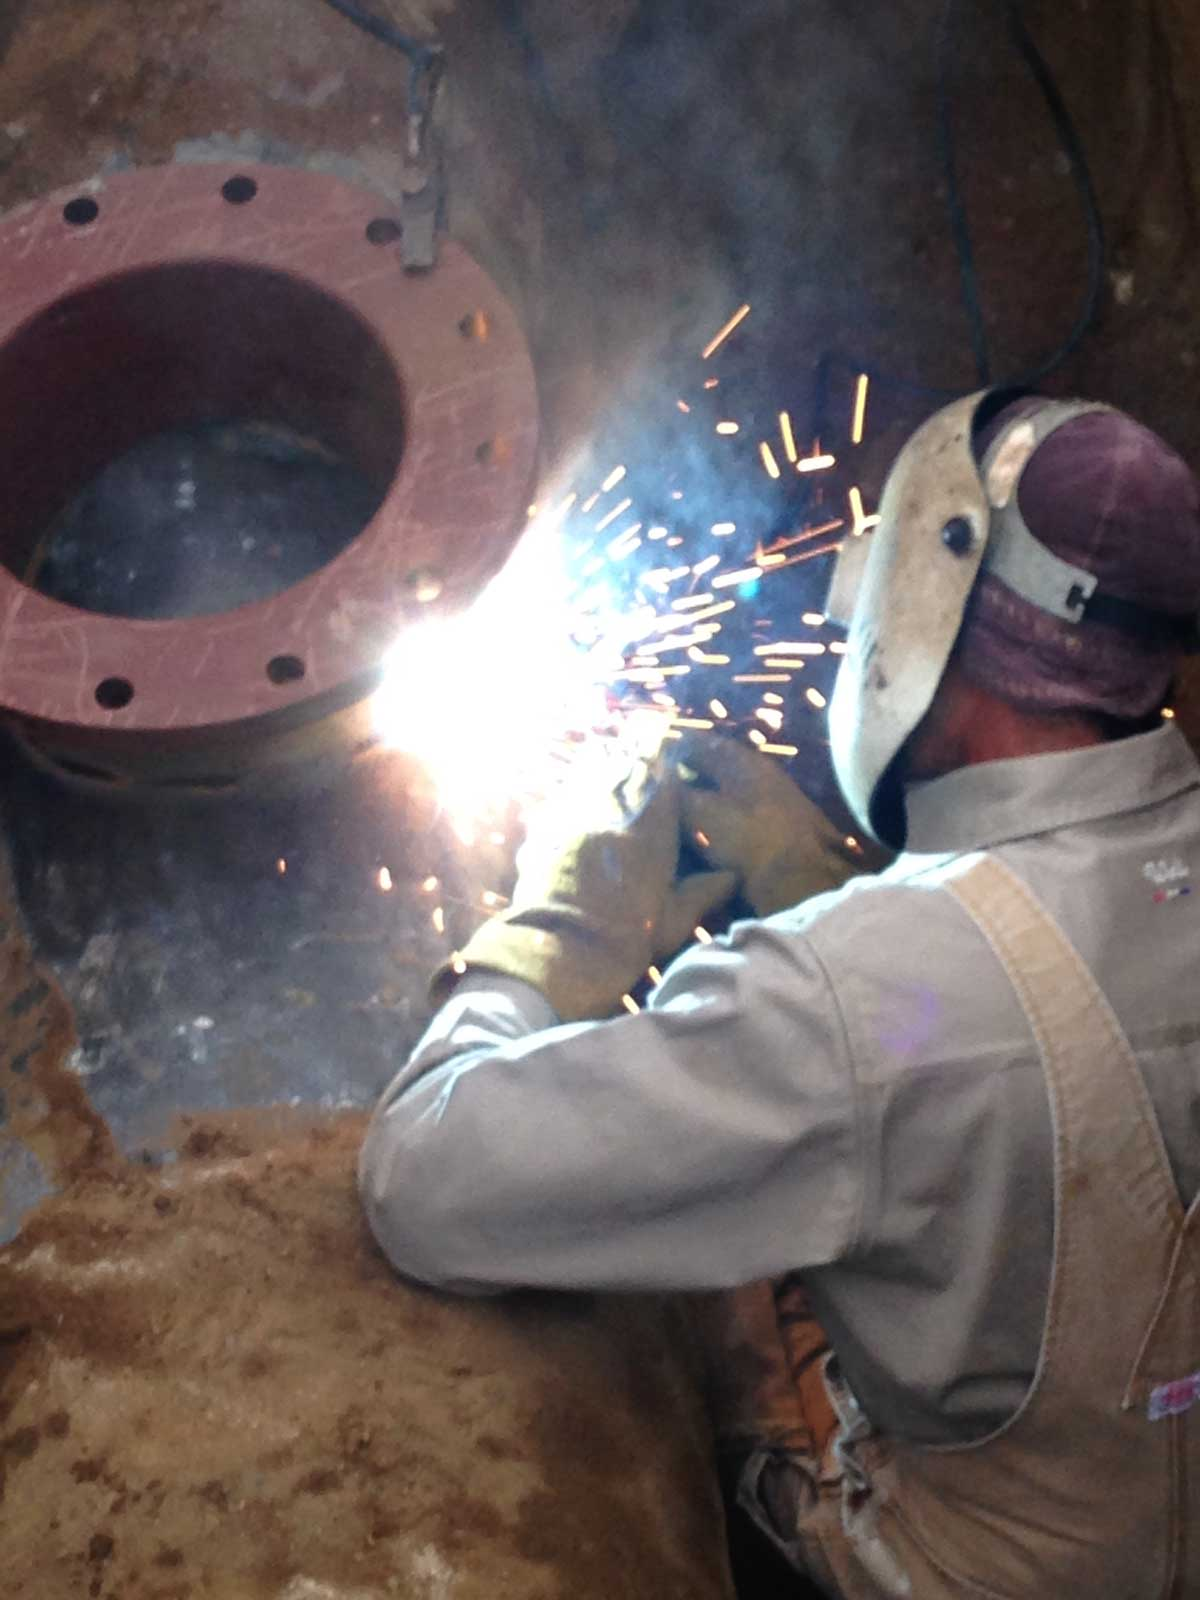 Another angle of the art of Welding